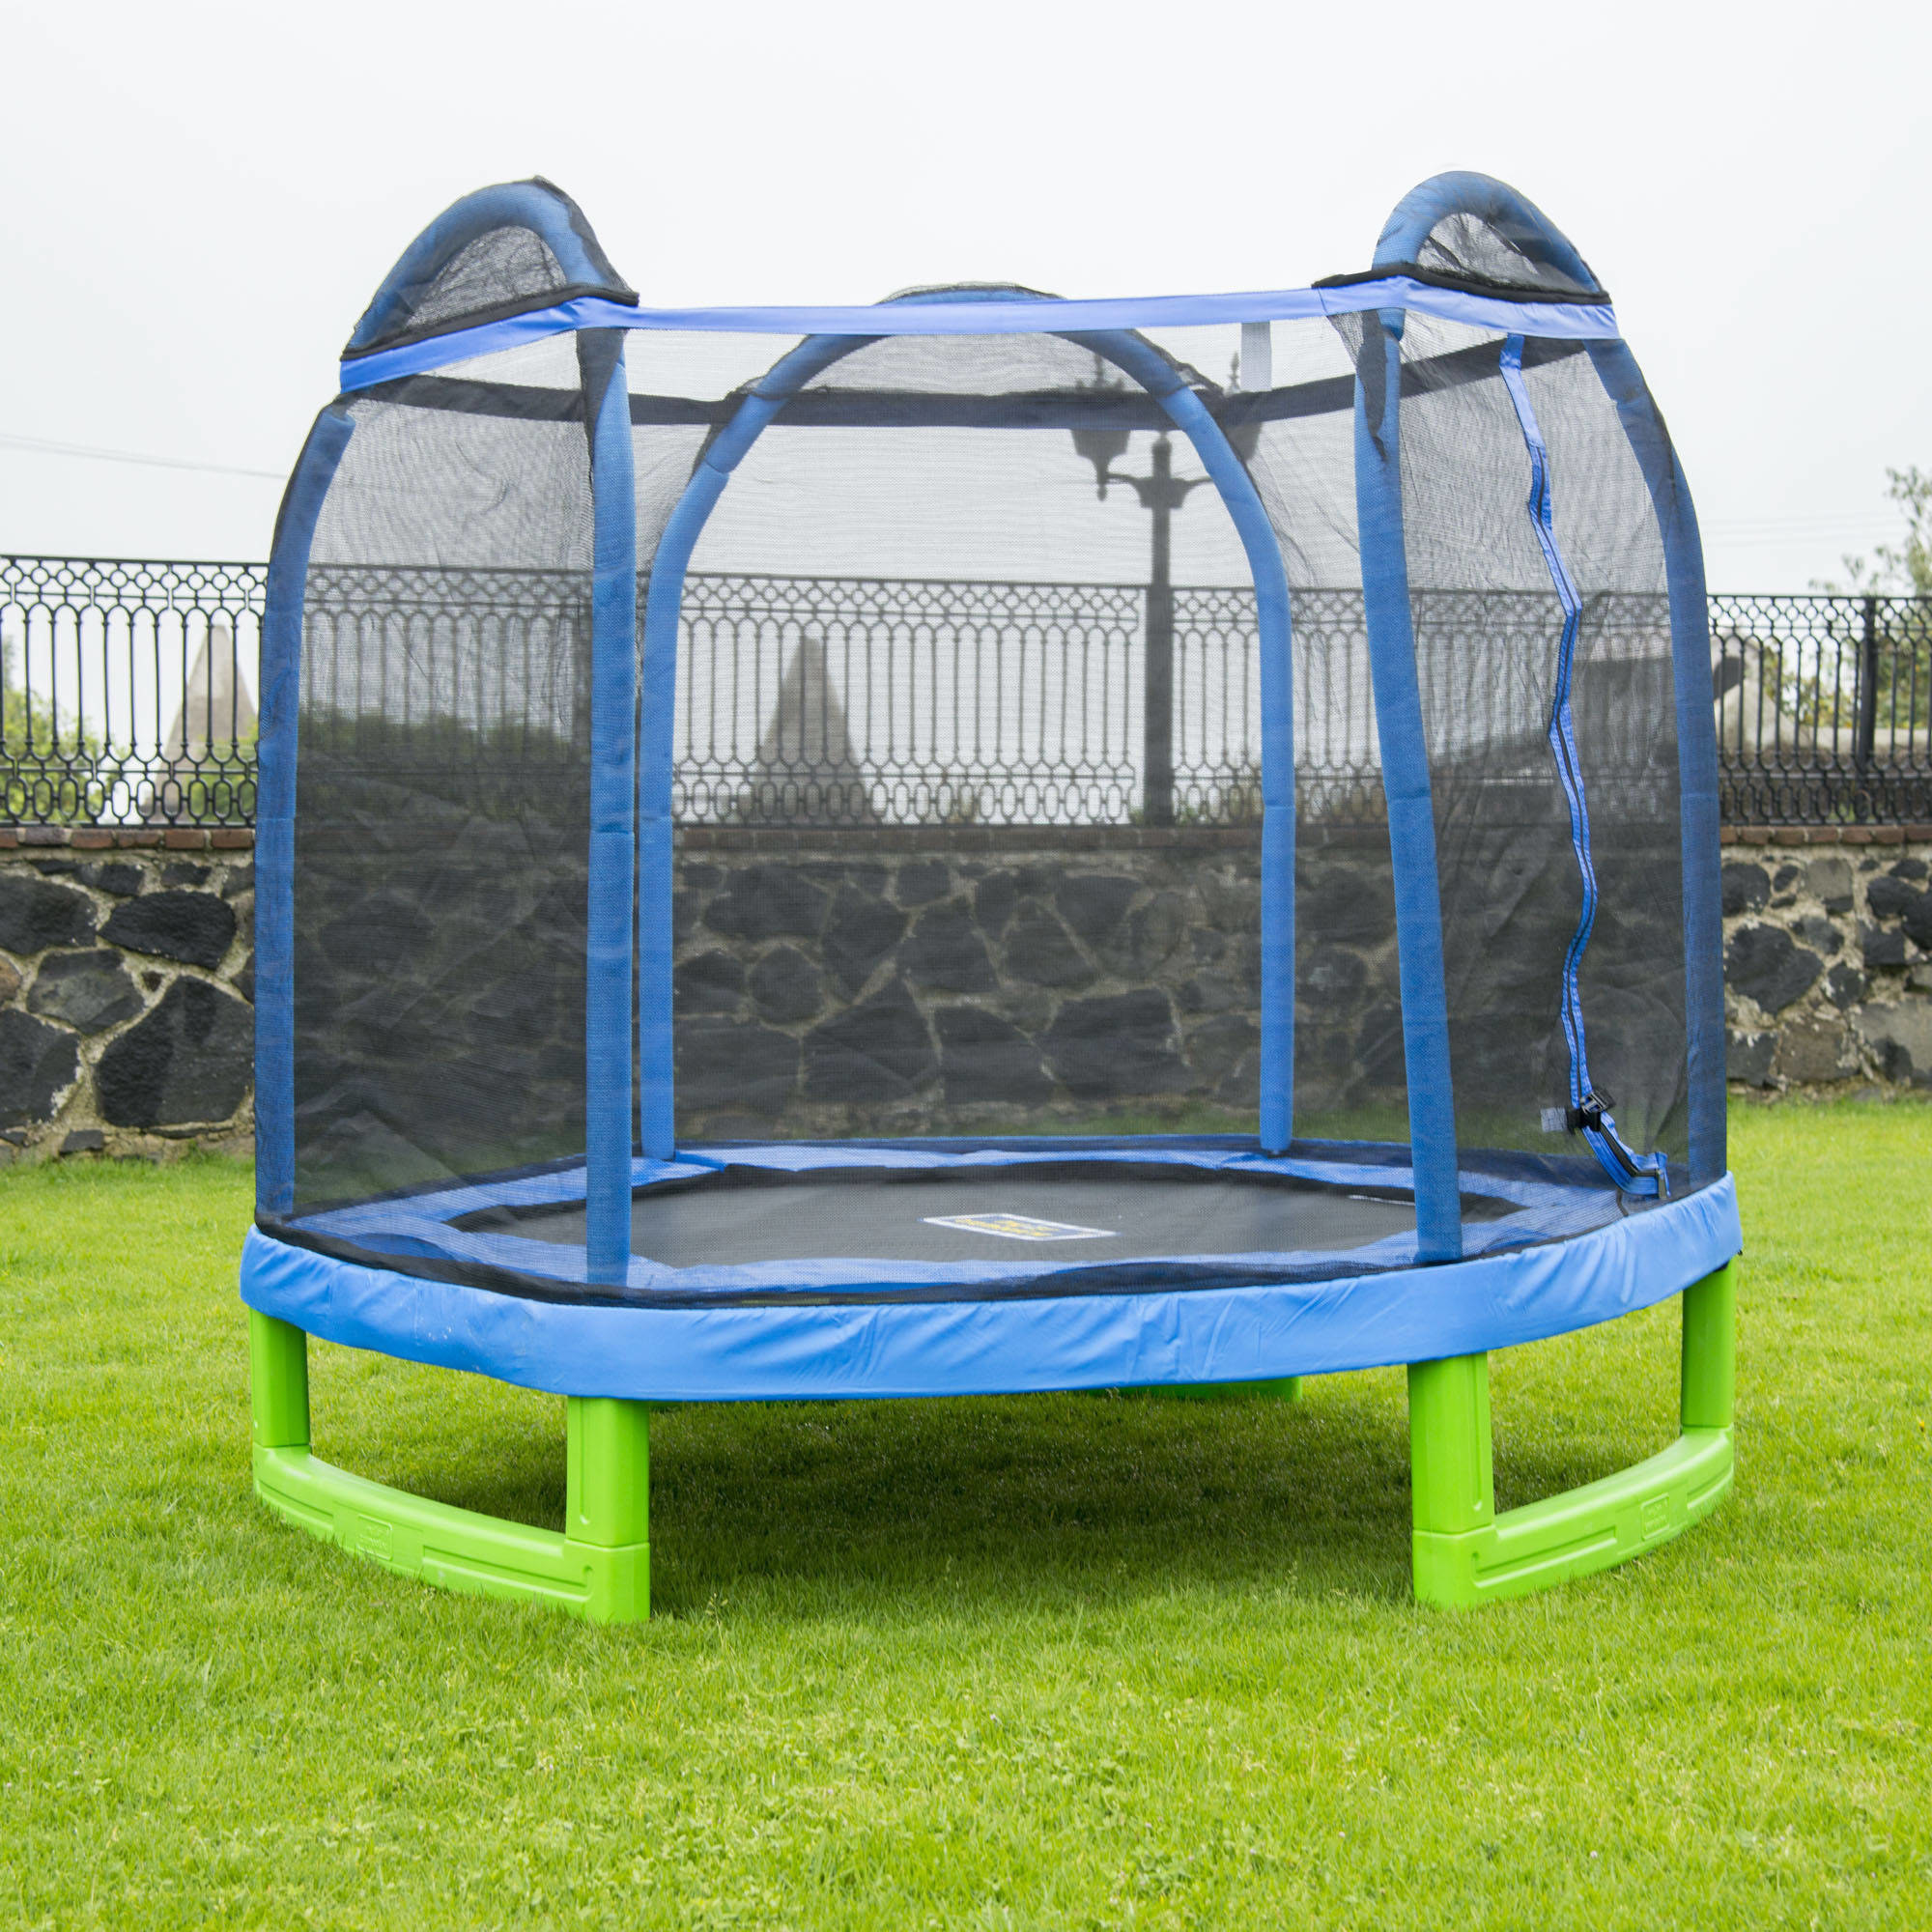 The blue trampoline on a lawn